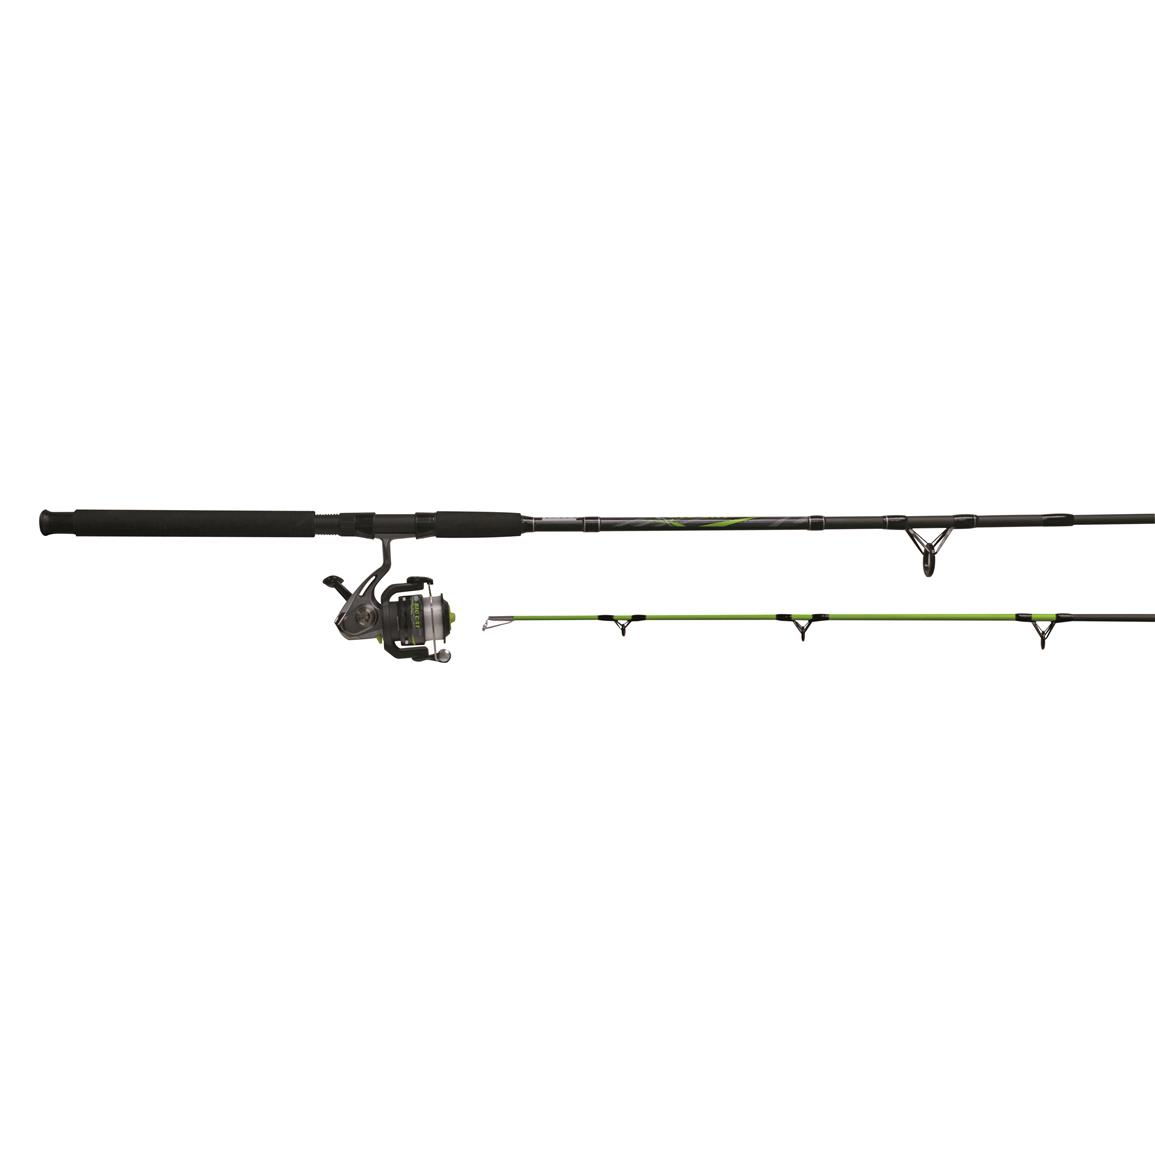 Zebco Big Cat Spinning Rod and Reel Combo